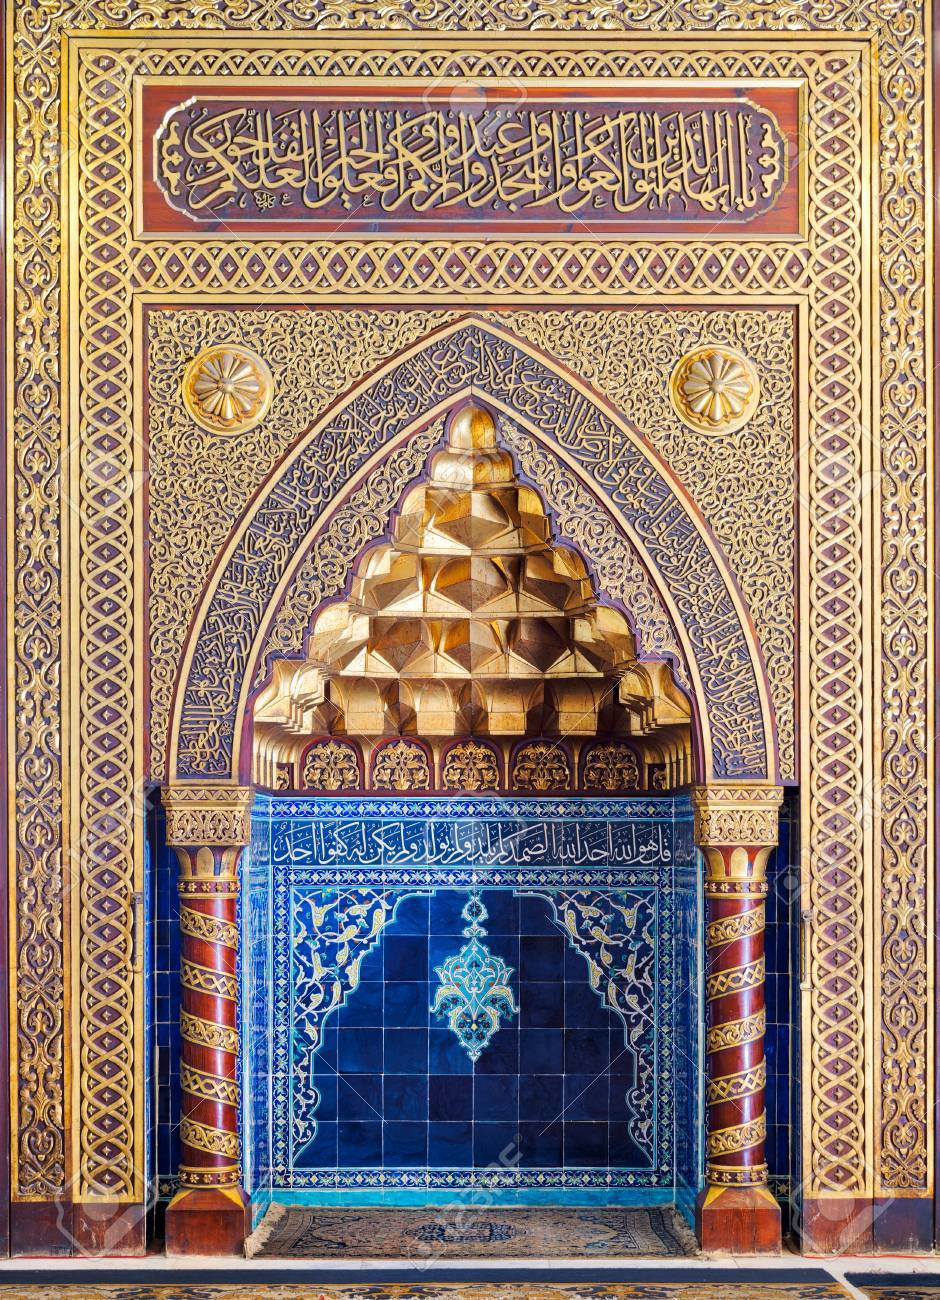 Golden Ornate Arched Mihrab Niche With Floral Pattern Blue